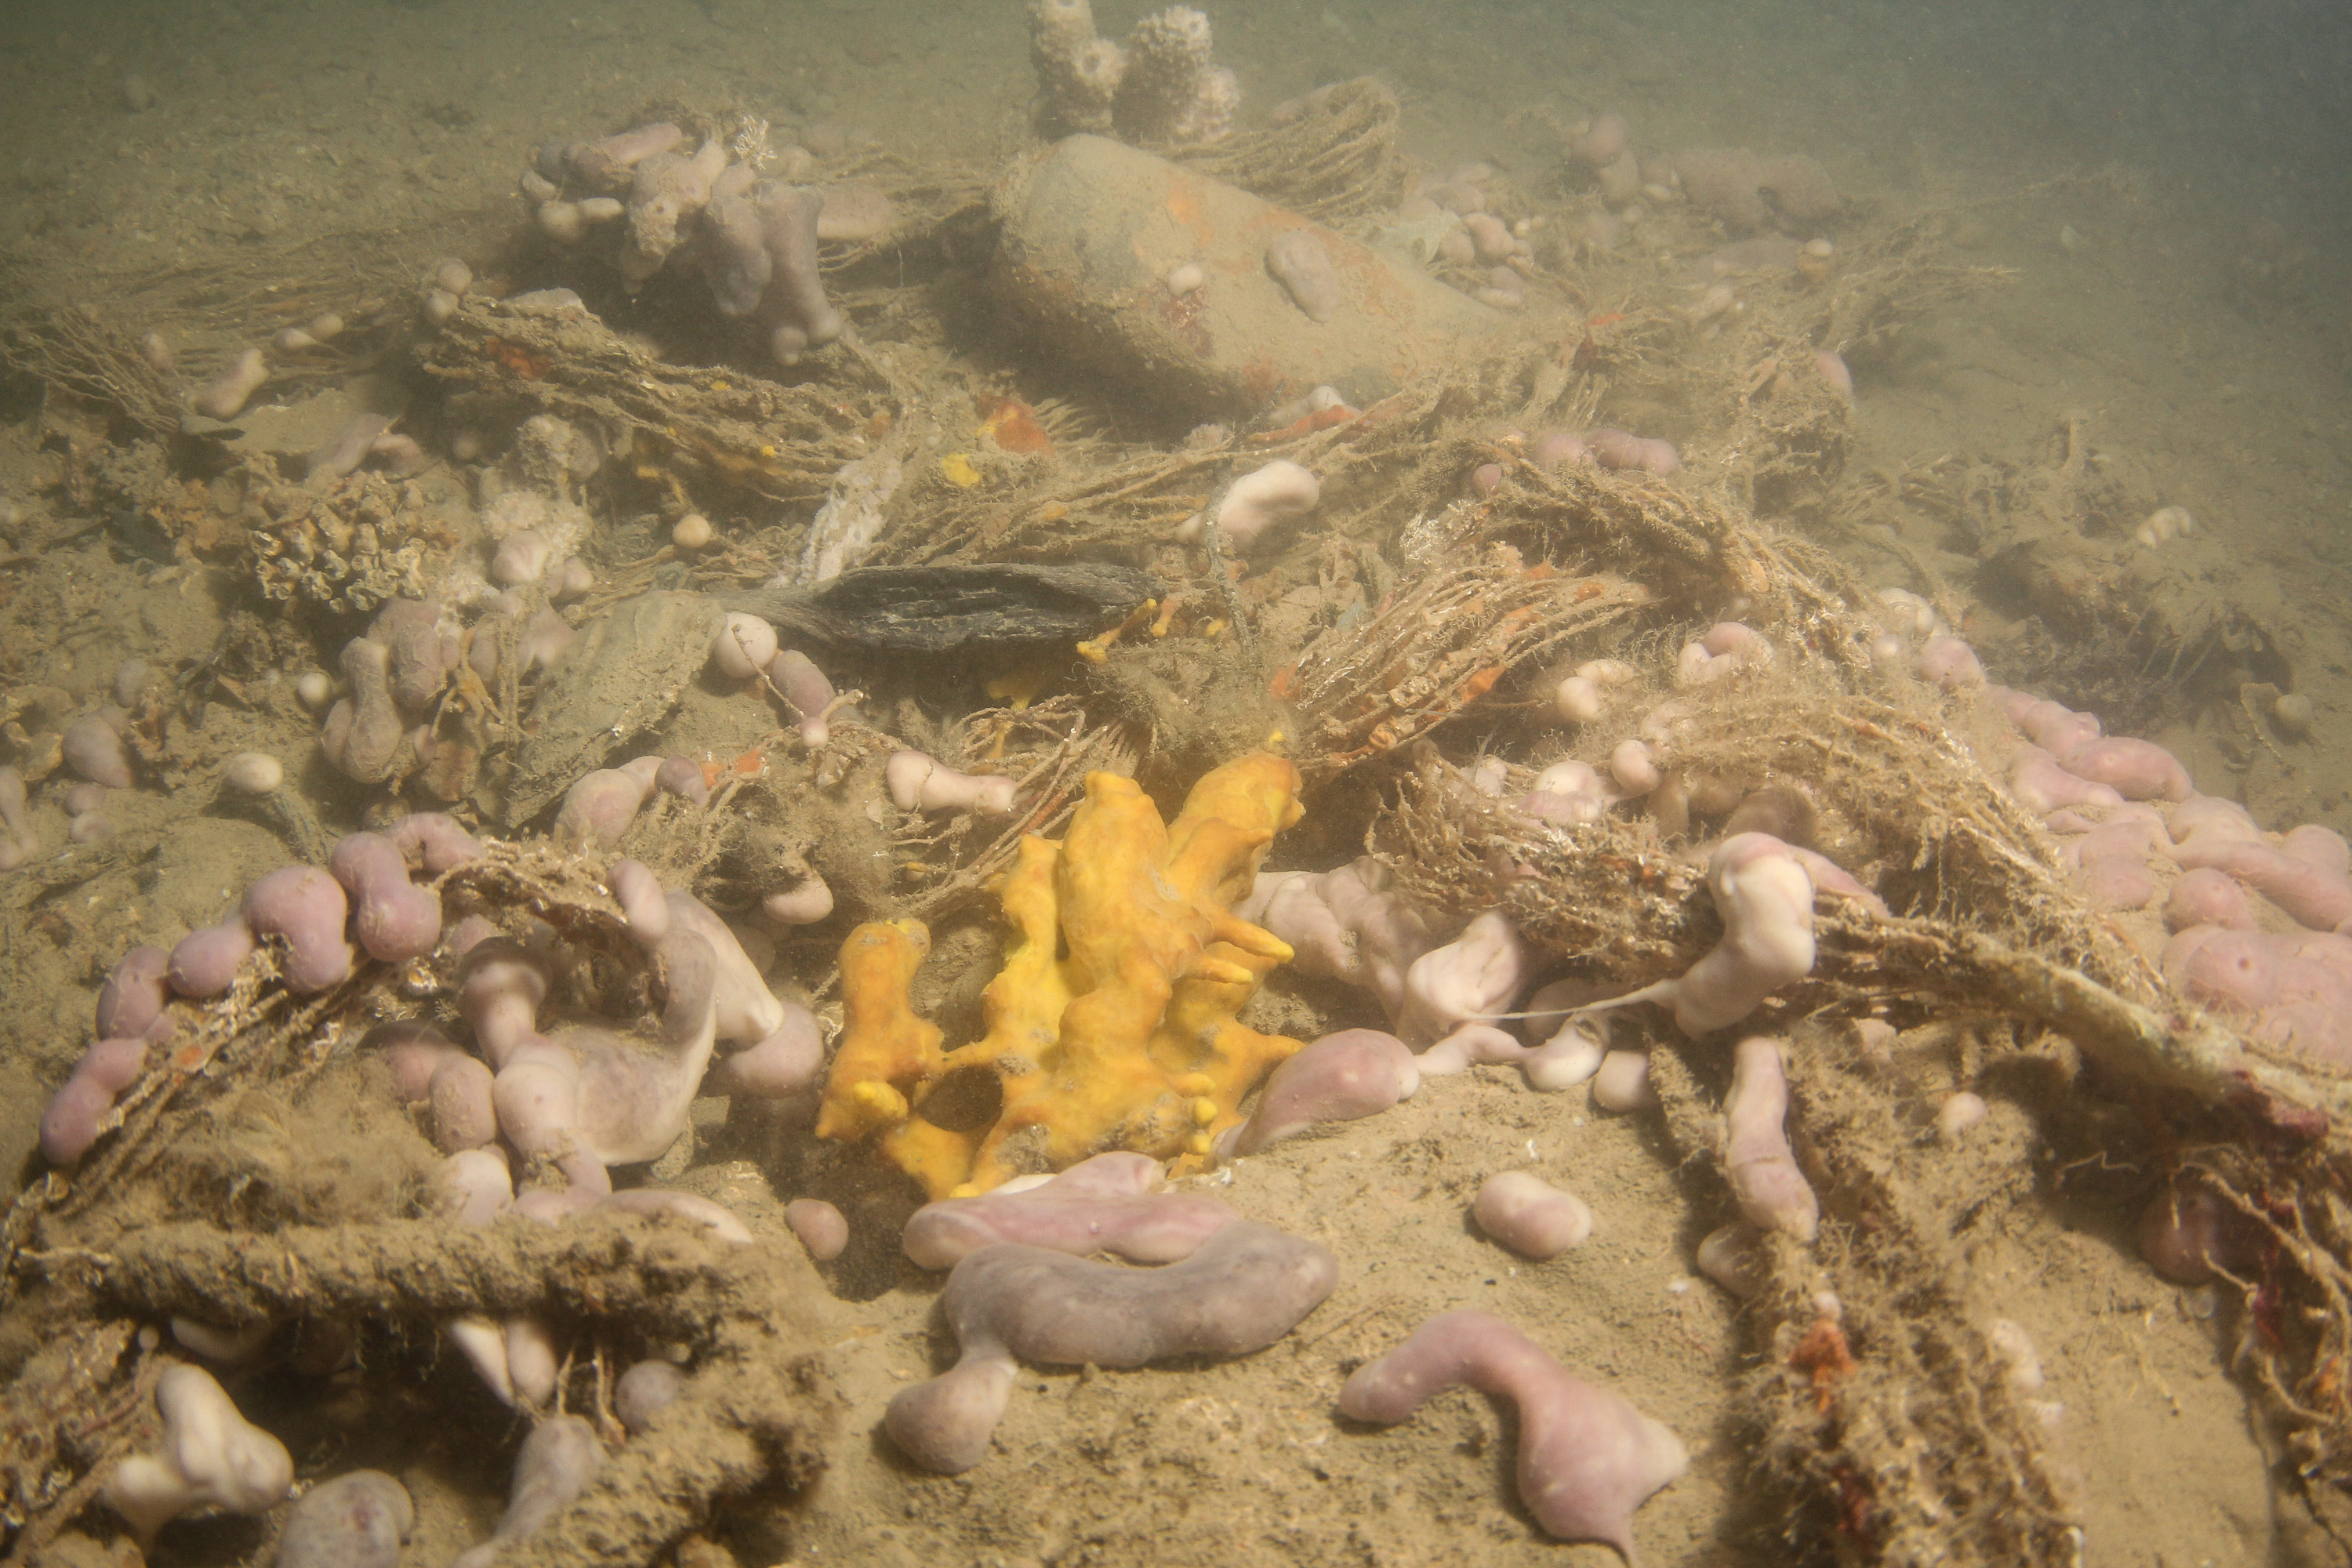 Underwater footage from Mali Ston Bay, copyright of Dubrovnik Neretva County Public Institution for Natural Protection